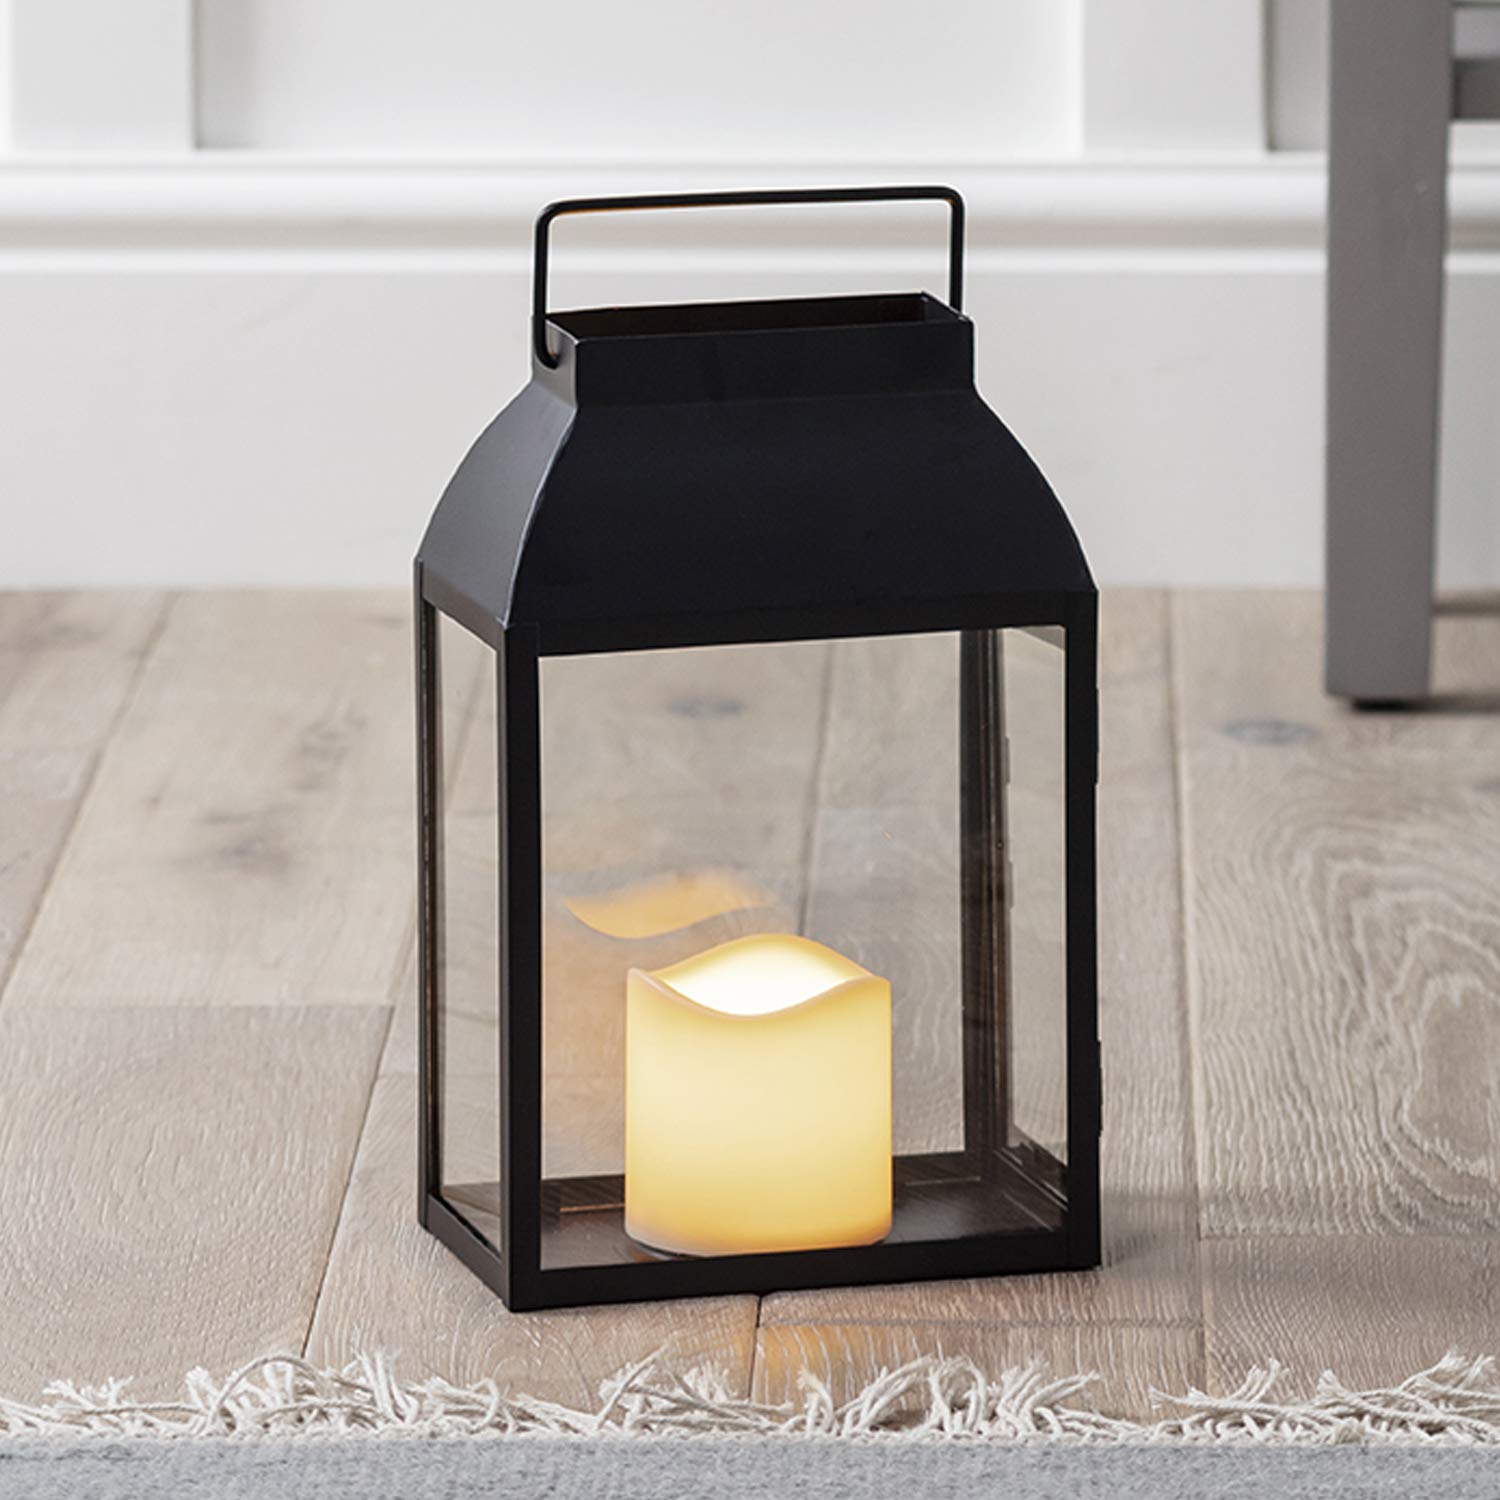 Lights4fun Regular Black Metal Battery Operated LED Flameless Candle Lantern for Indoor Outdoor Use Inc.